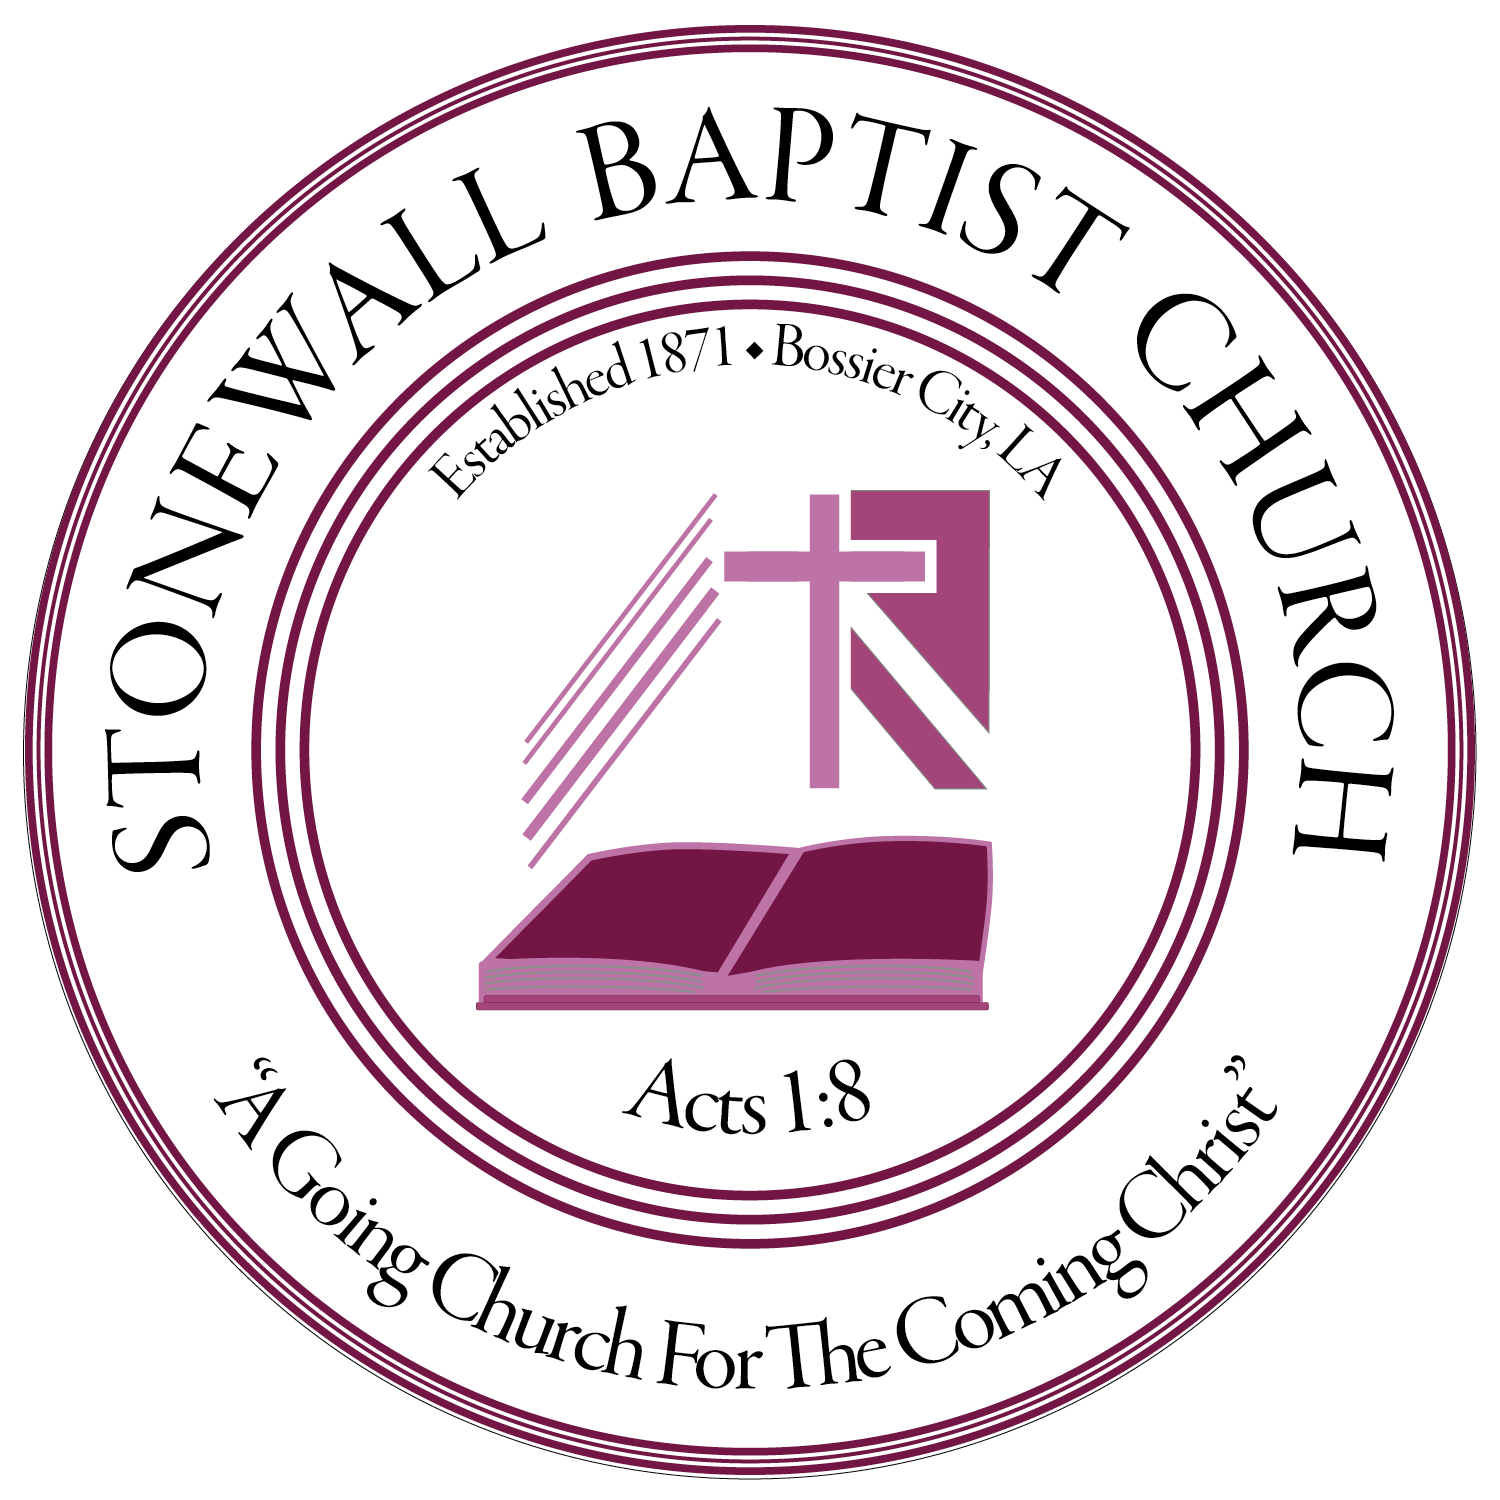 Stonewall Baptist Church Learning Center